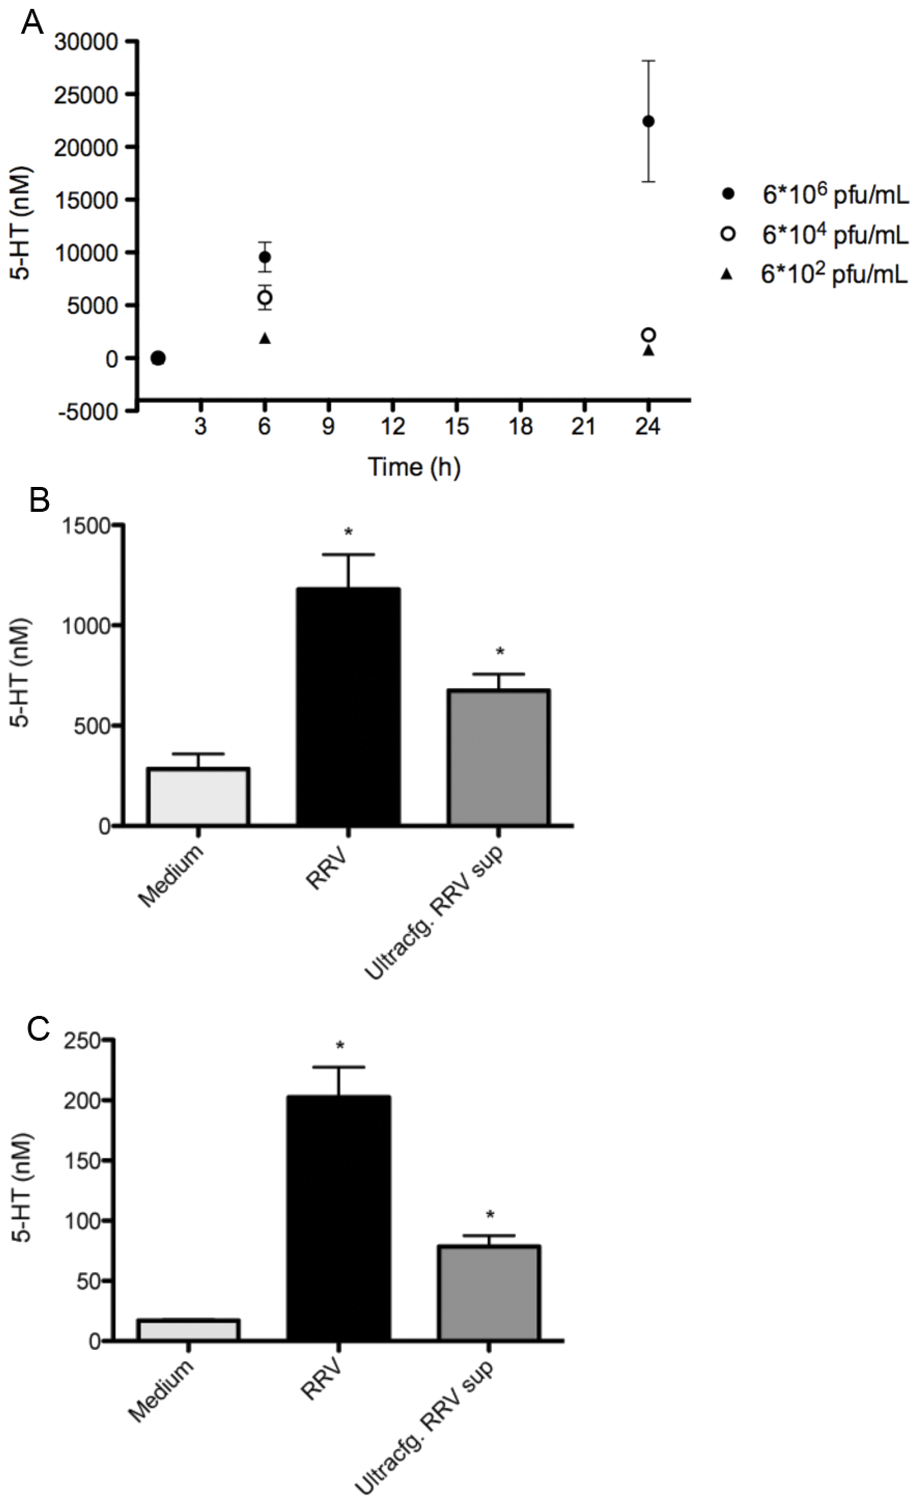 Rhesus rotavirus stimulates 5-HT release from EC tumor cells in a dose-dependent manner.